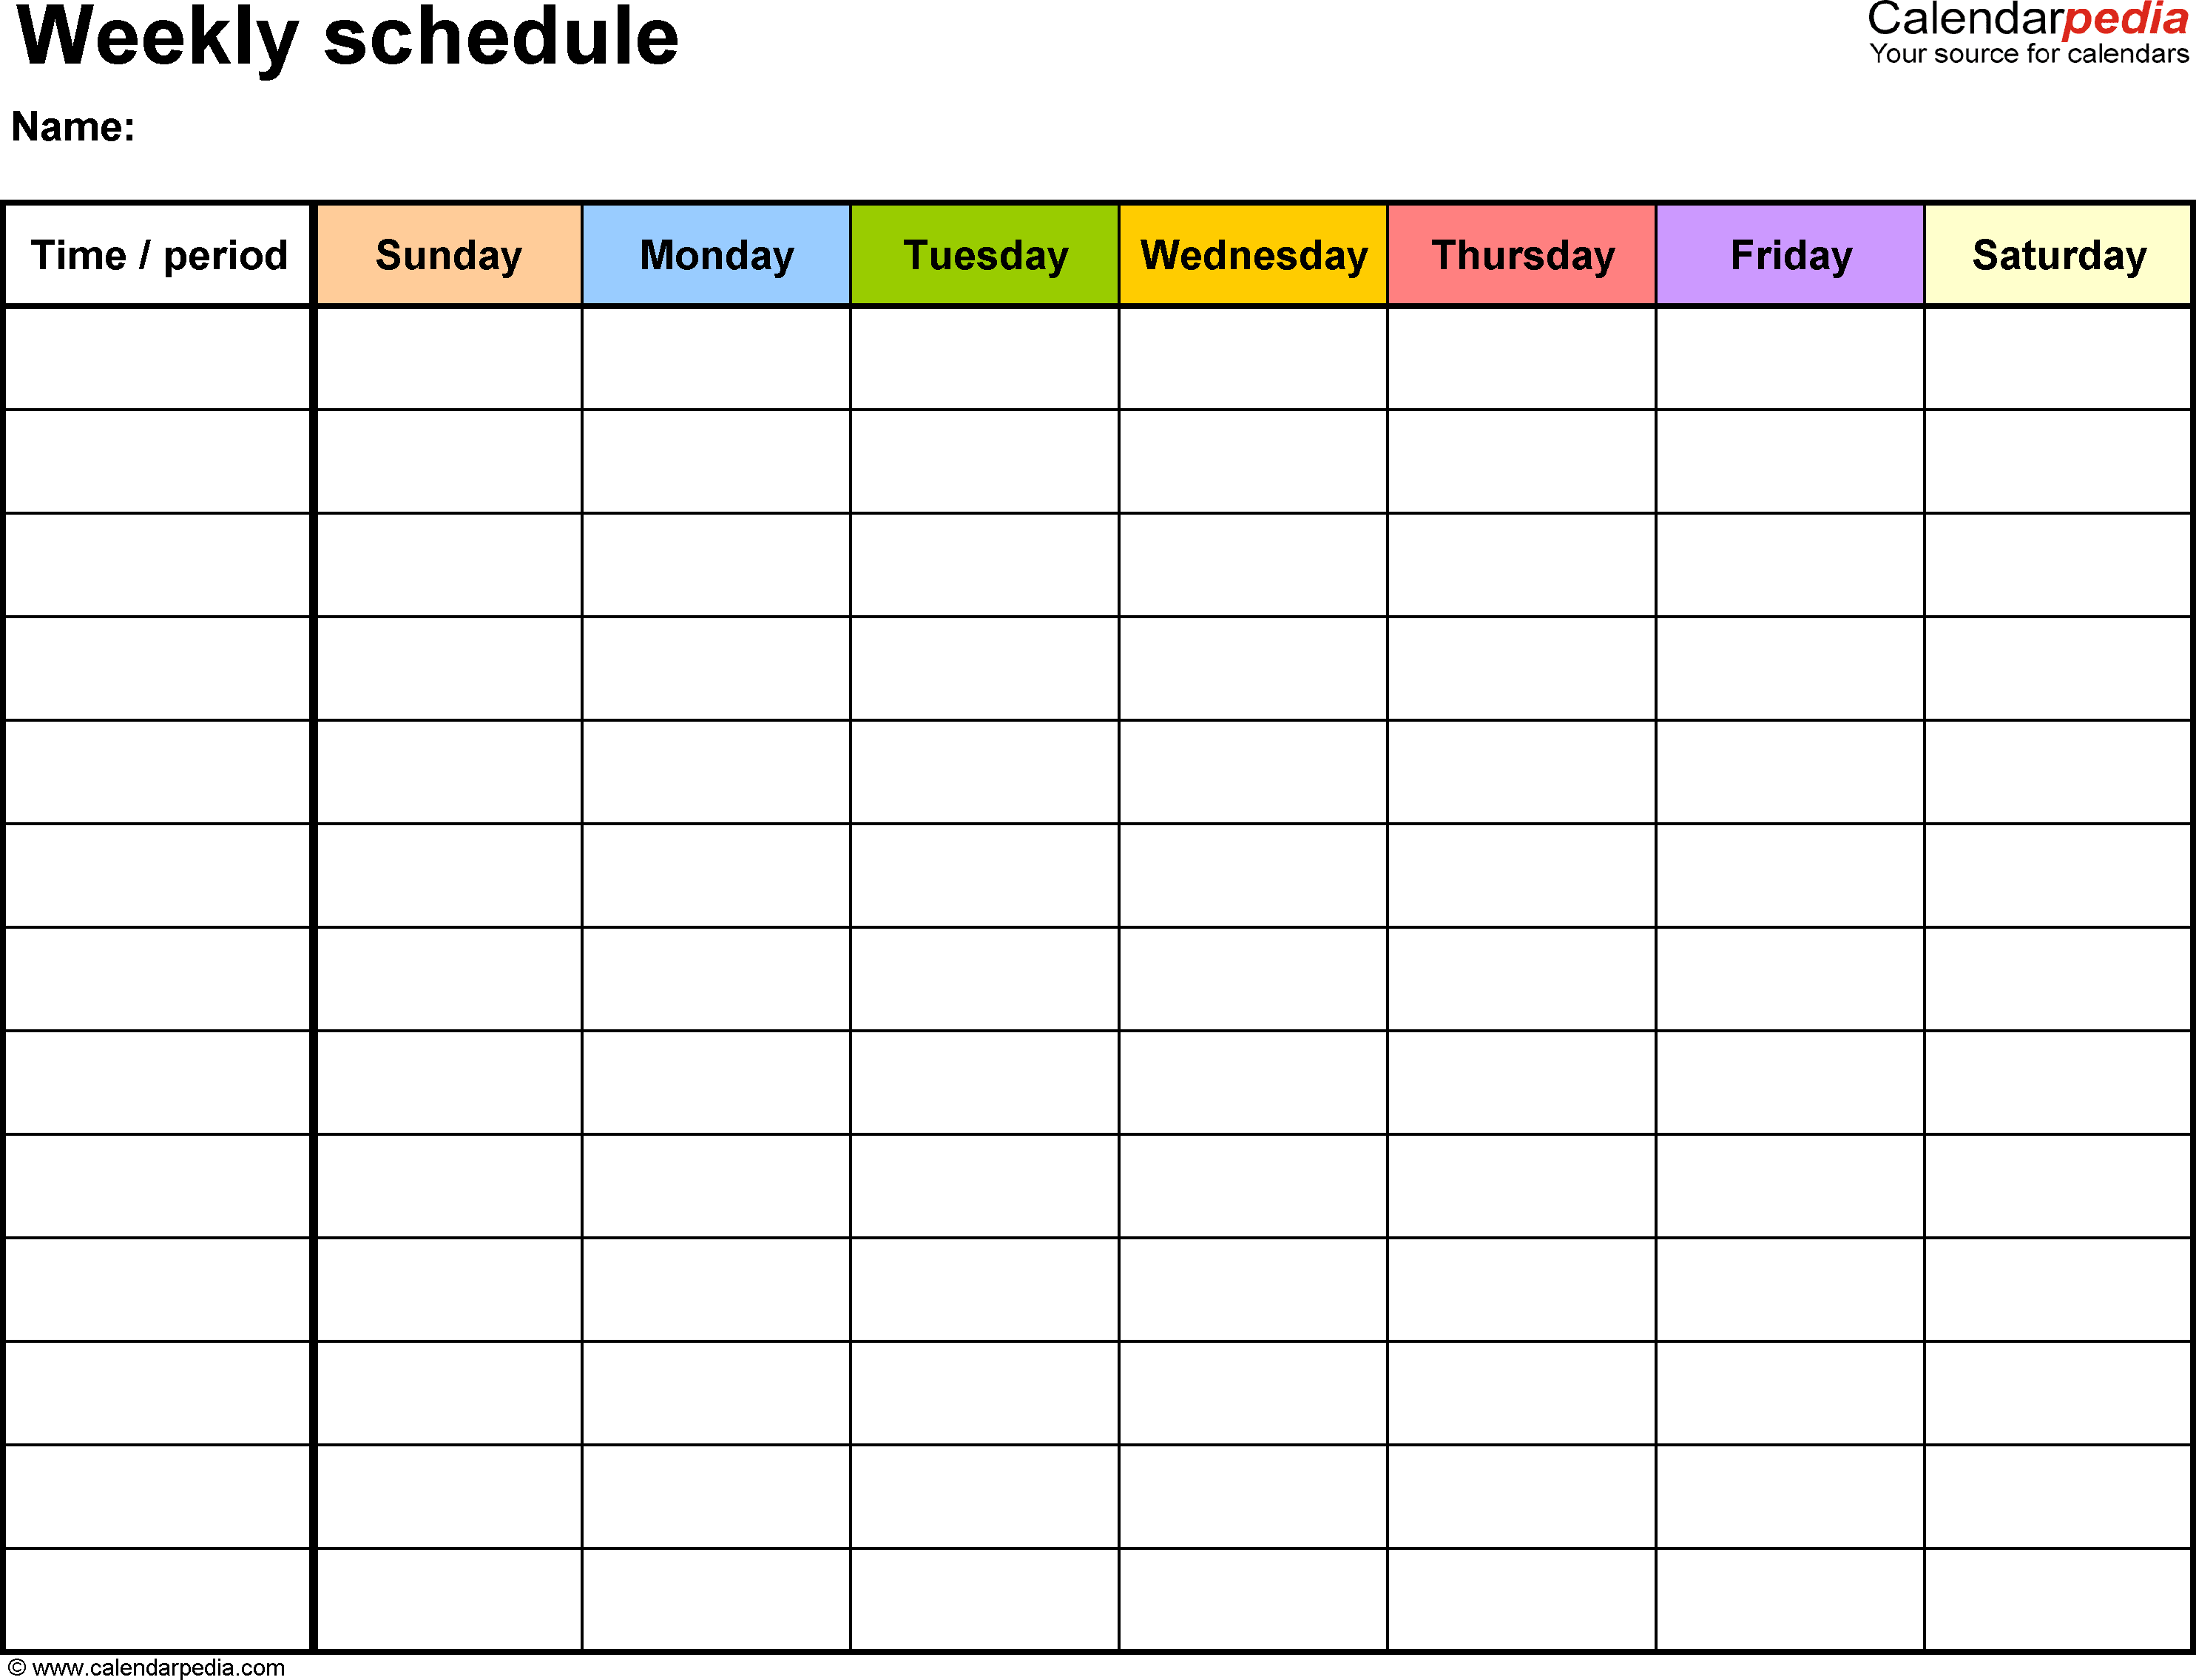 Calendar clipart 7 day.  schedule maker incep